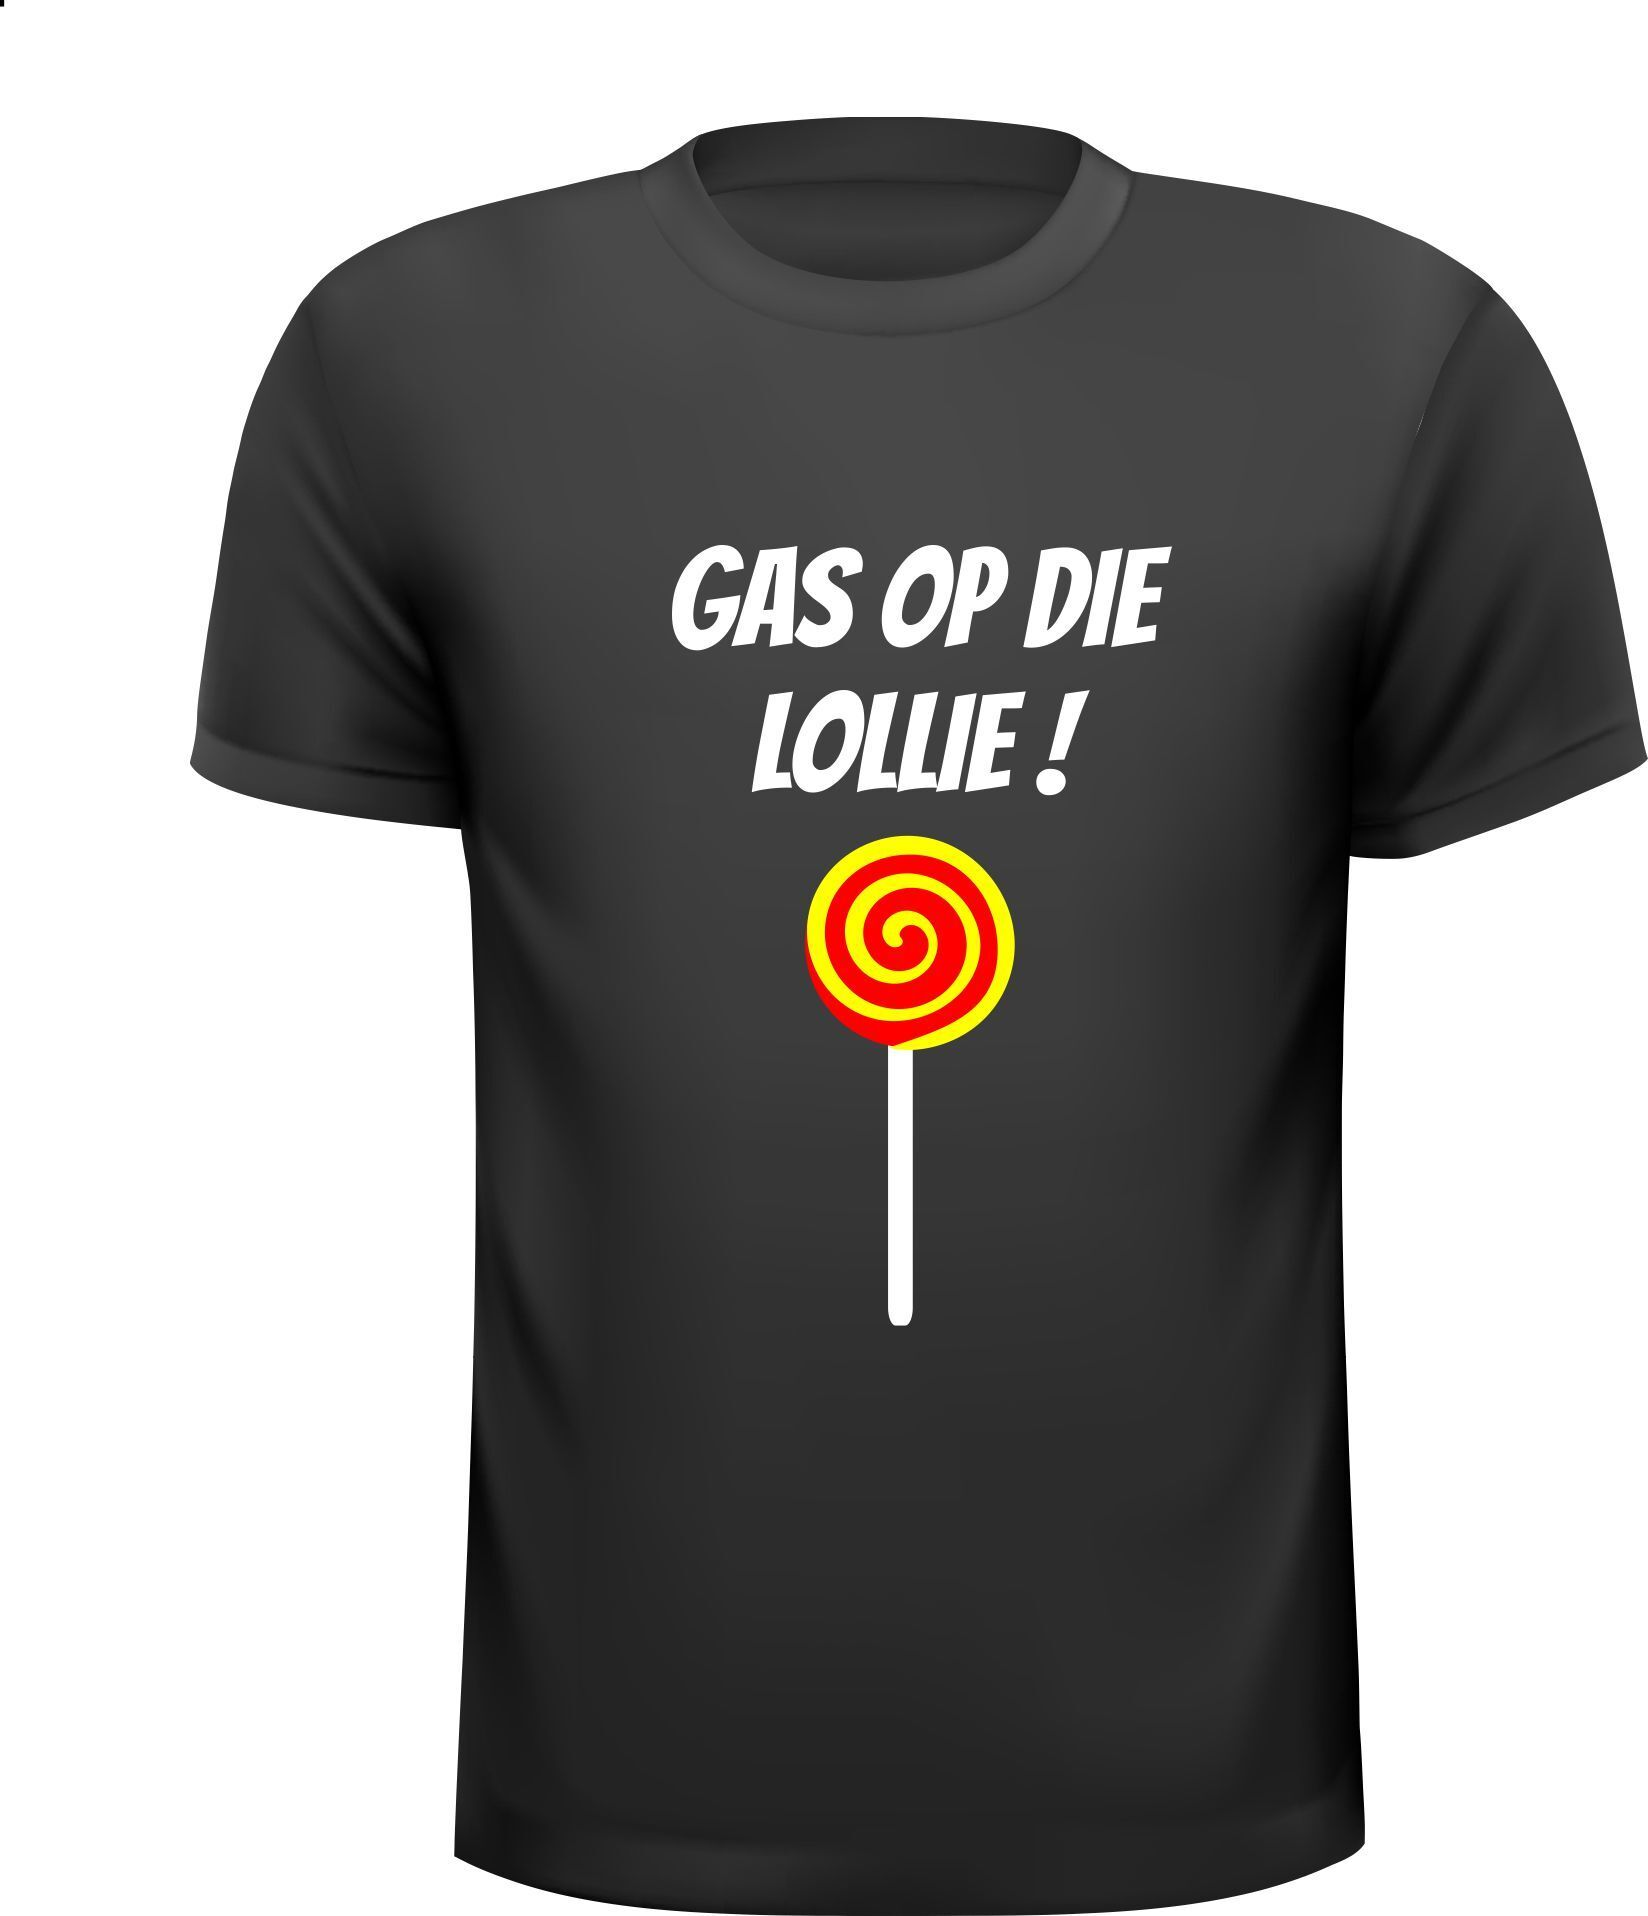 Gas op die lollie shirt